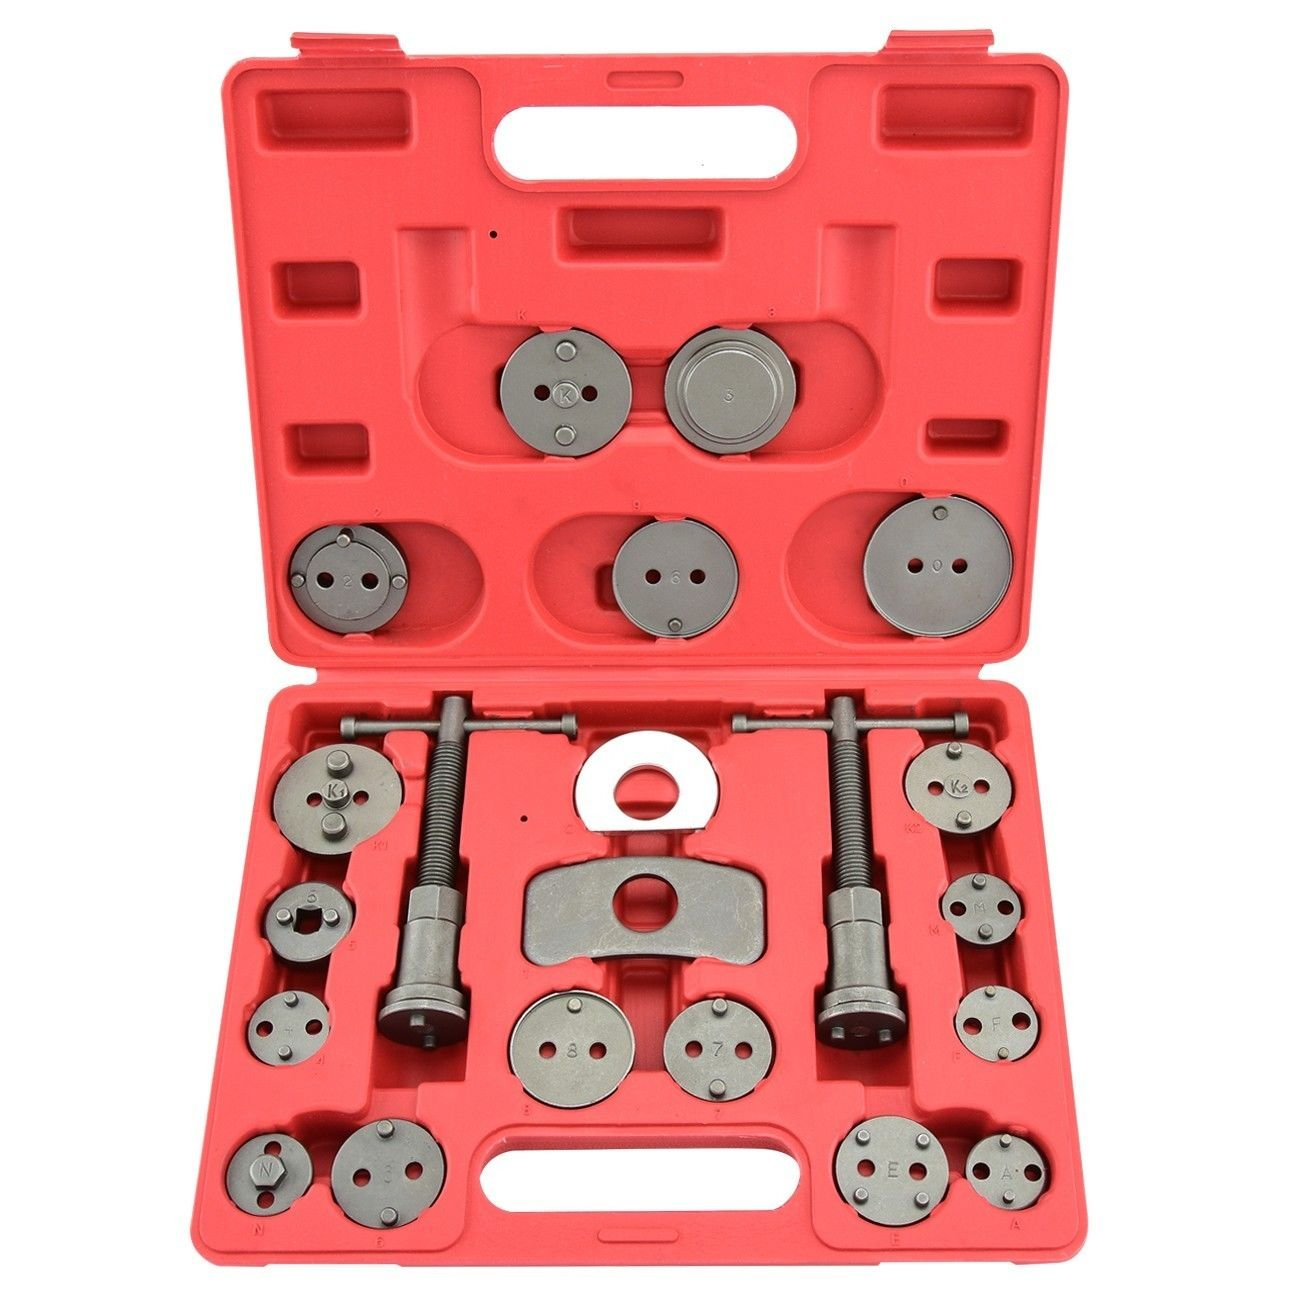 K&N41 Pro Disc Brakes Rewind Wind Back Service Caliper Brake Piston Tool Kit Set Of 18 Pcs